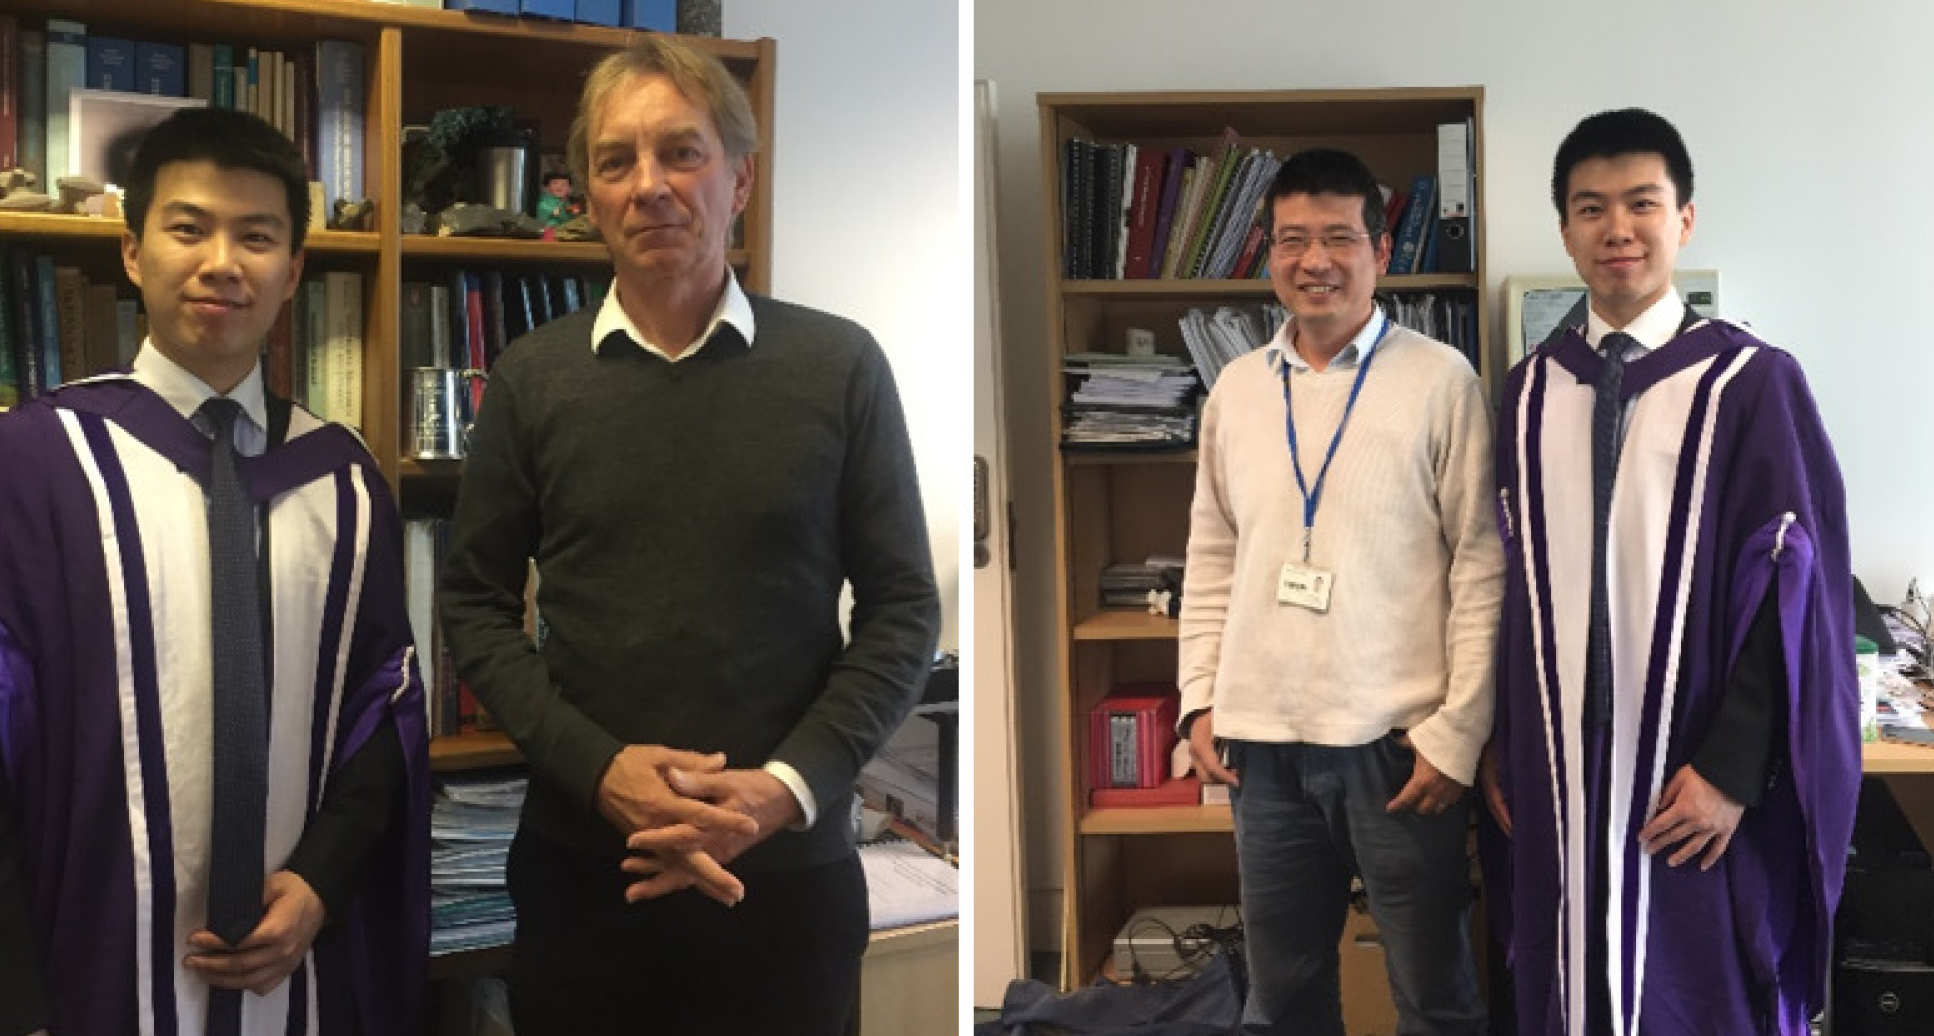 Dr. Qinghua Lei with his PhD supervisors: (left) with Dr. John-Paul Latham; (right) with Dr. Jiansheng Xiang